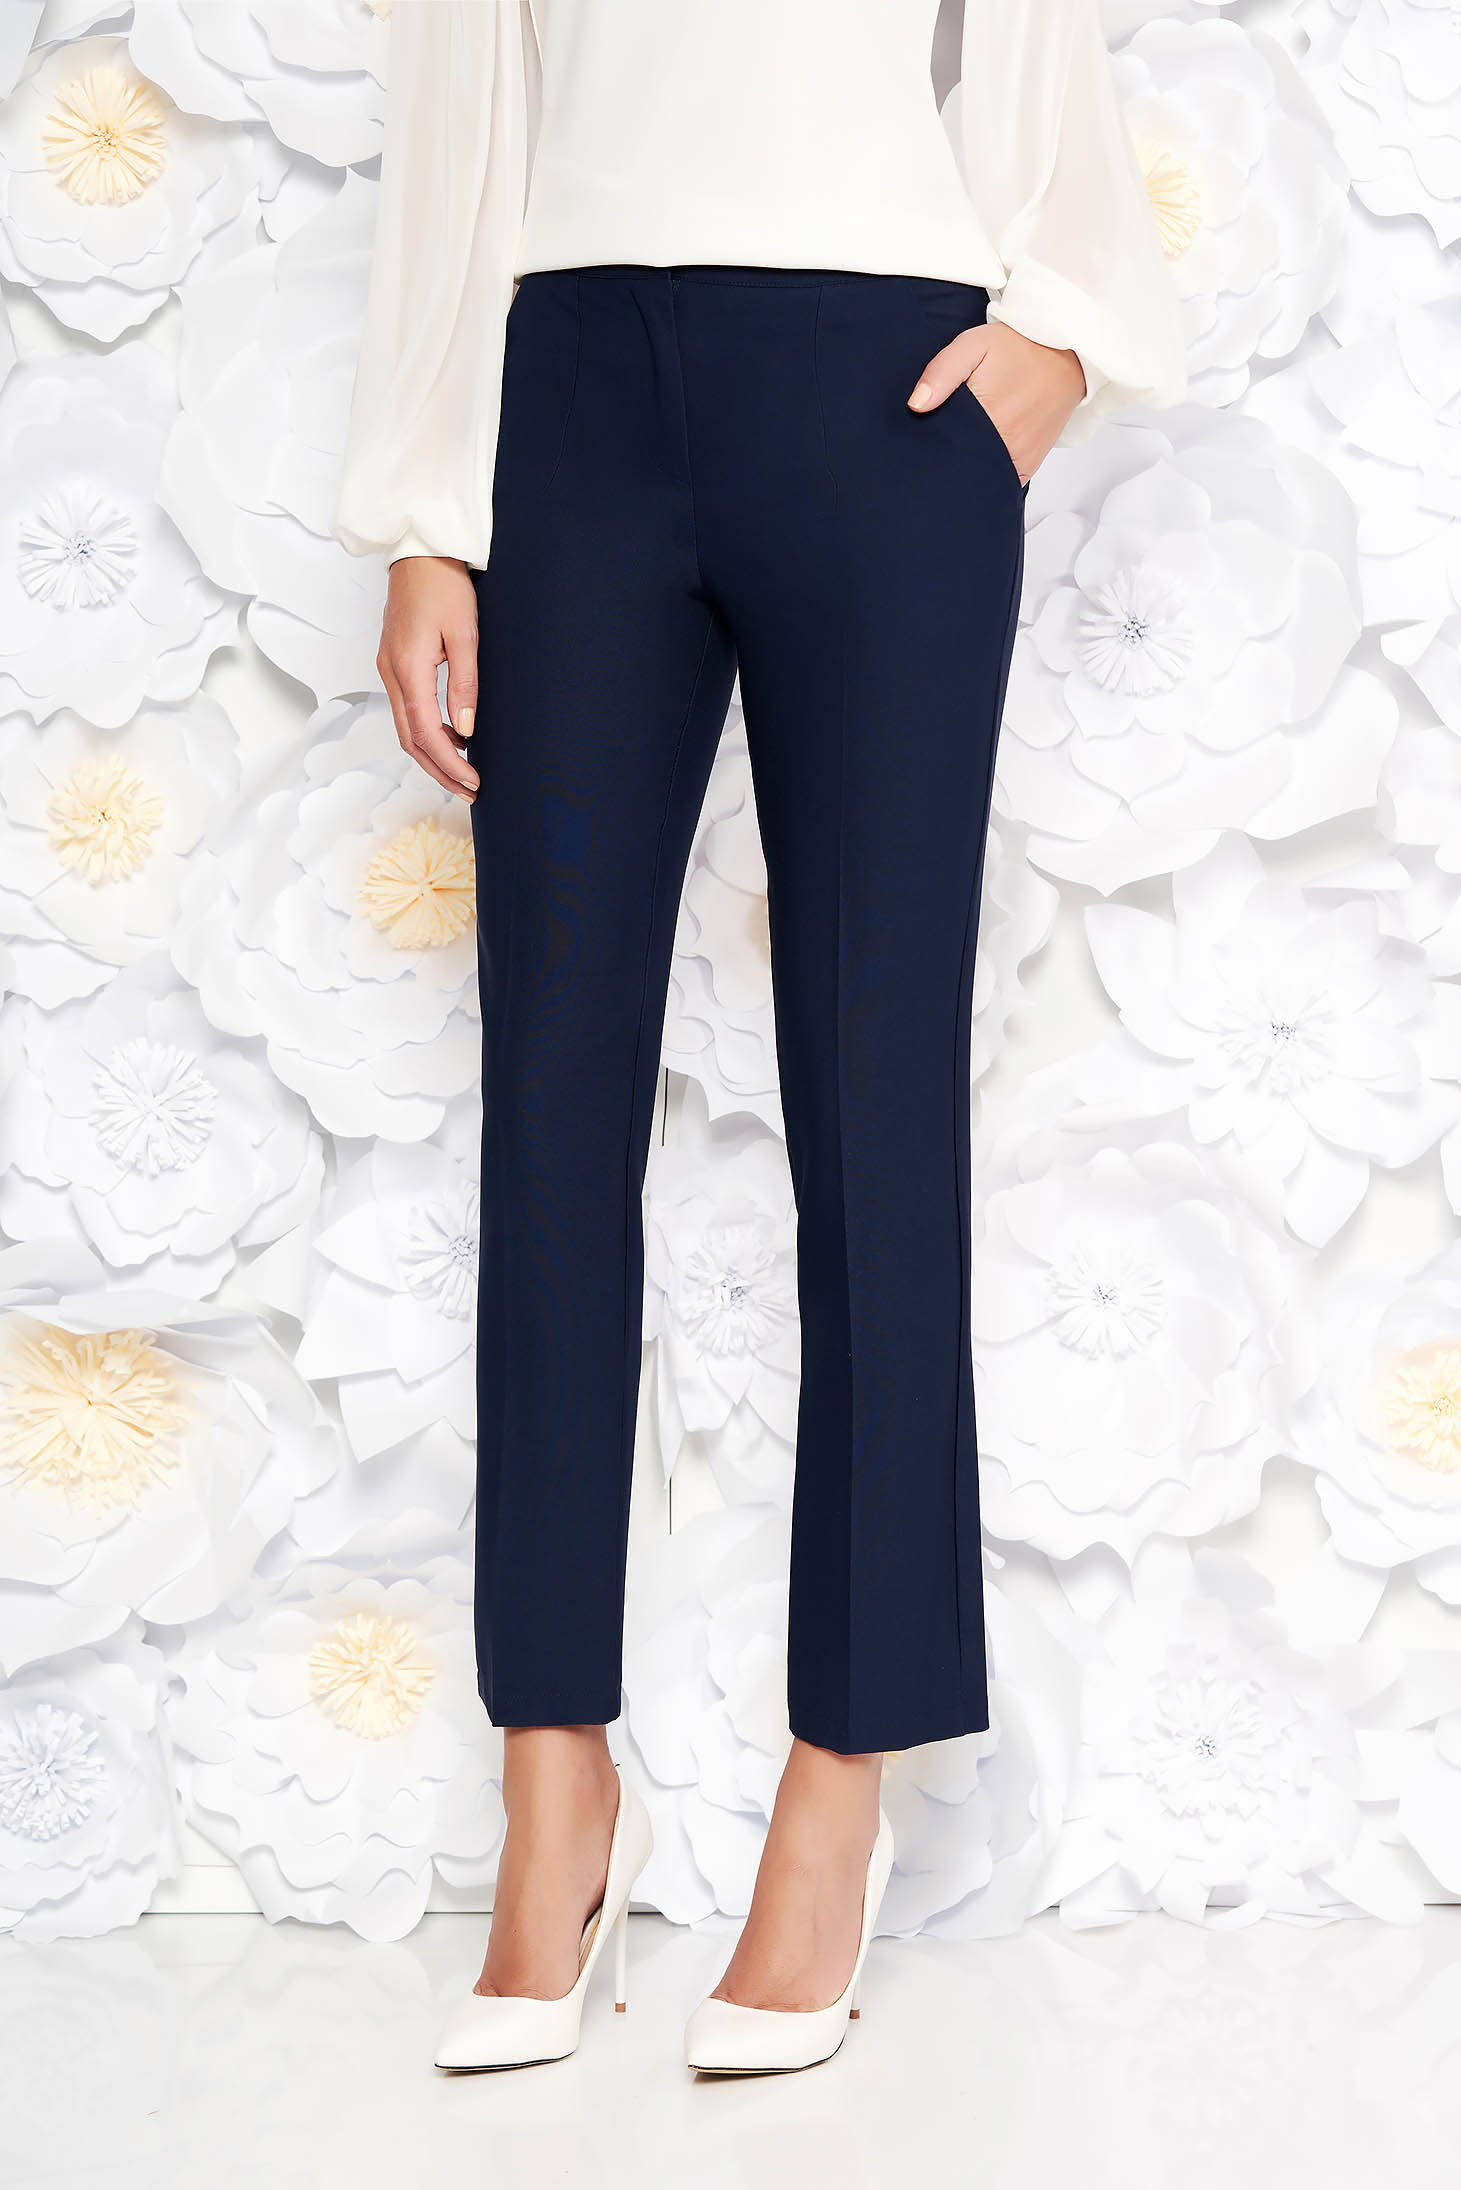 Artista darkblue trousers office with pockets with medium waist slightly elastic fabric with straight cut